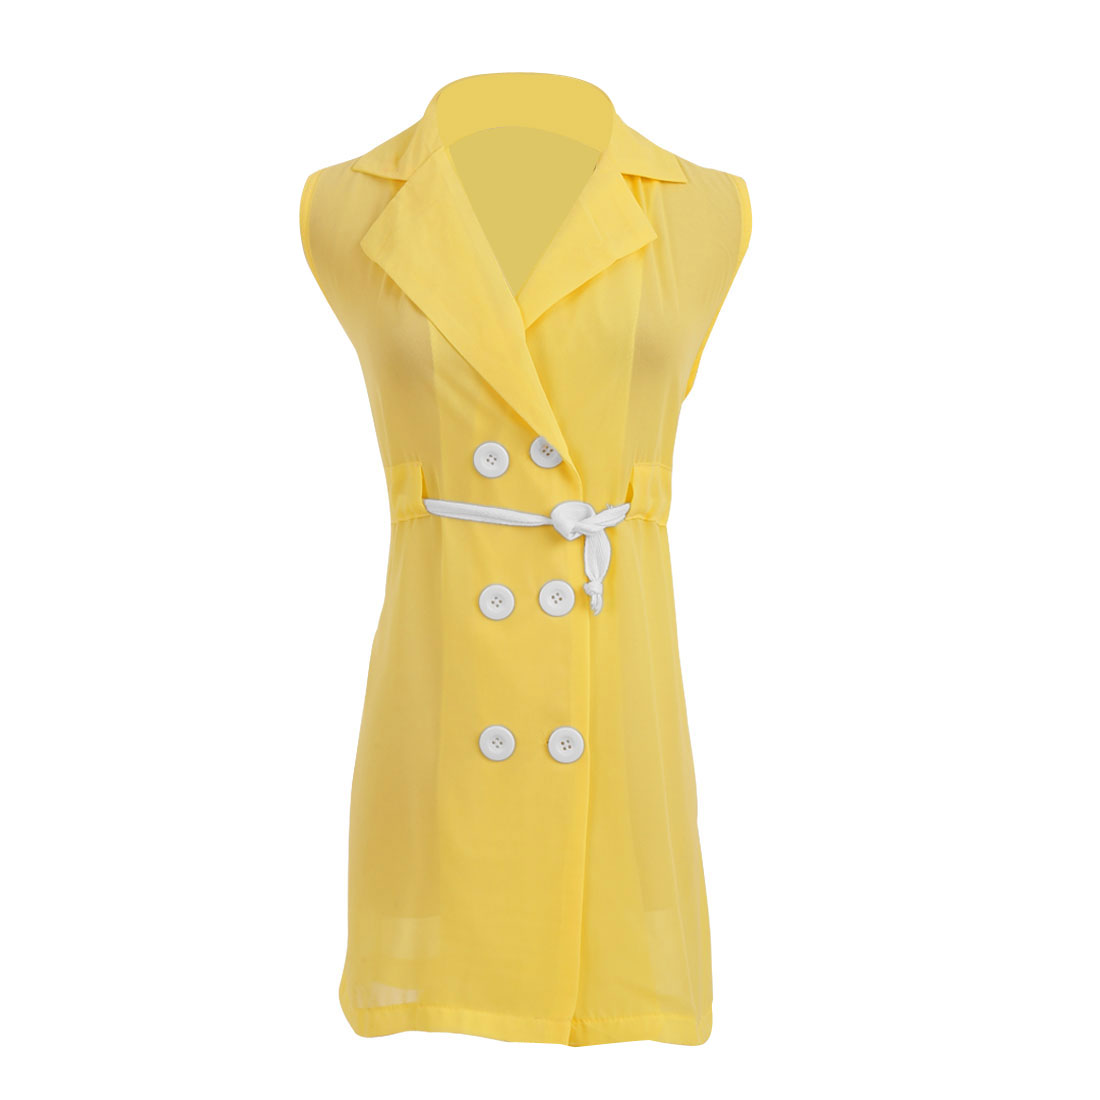 Ladies Point Collar Drawstring Buttons Upper Trench Vests Light Yellow S